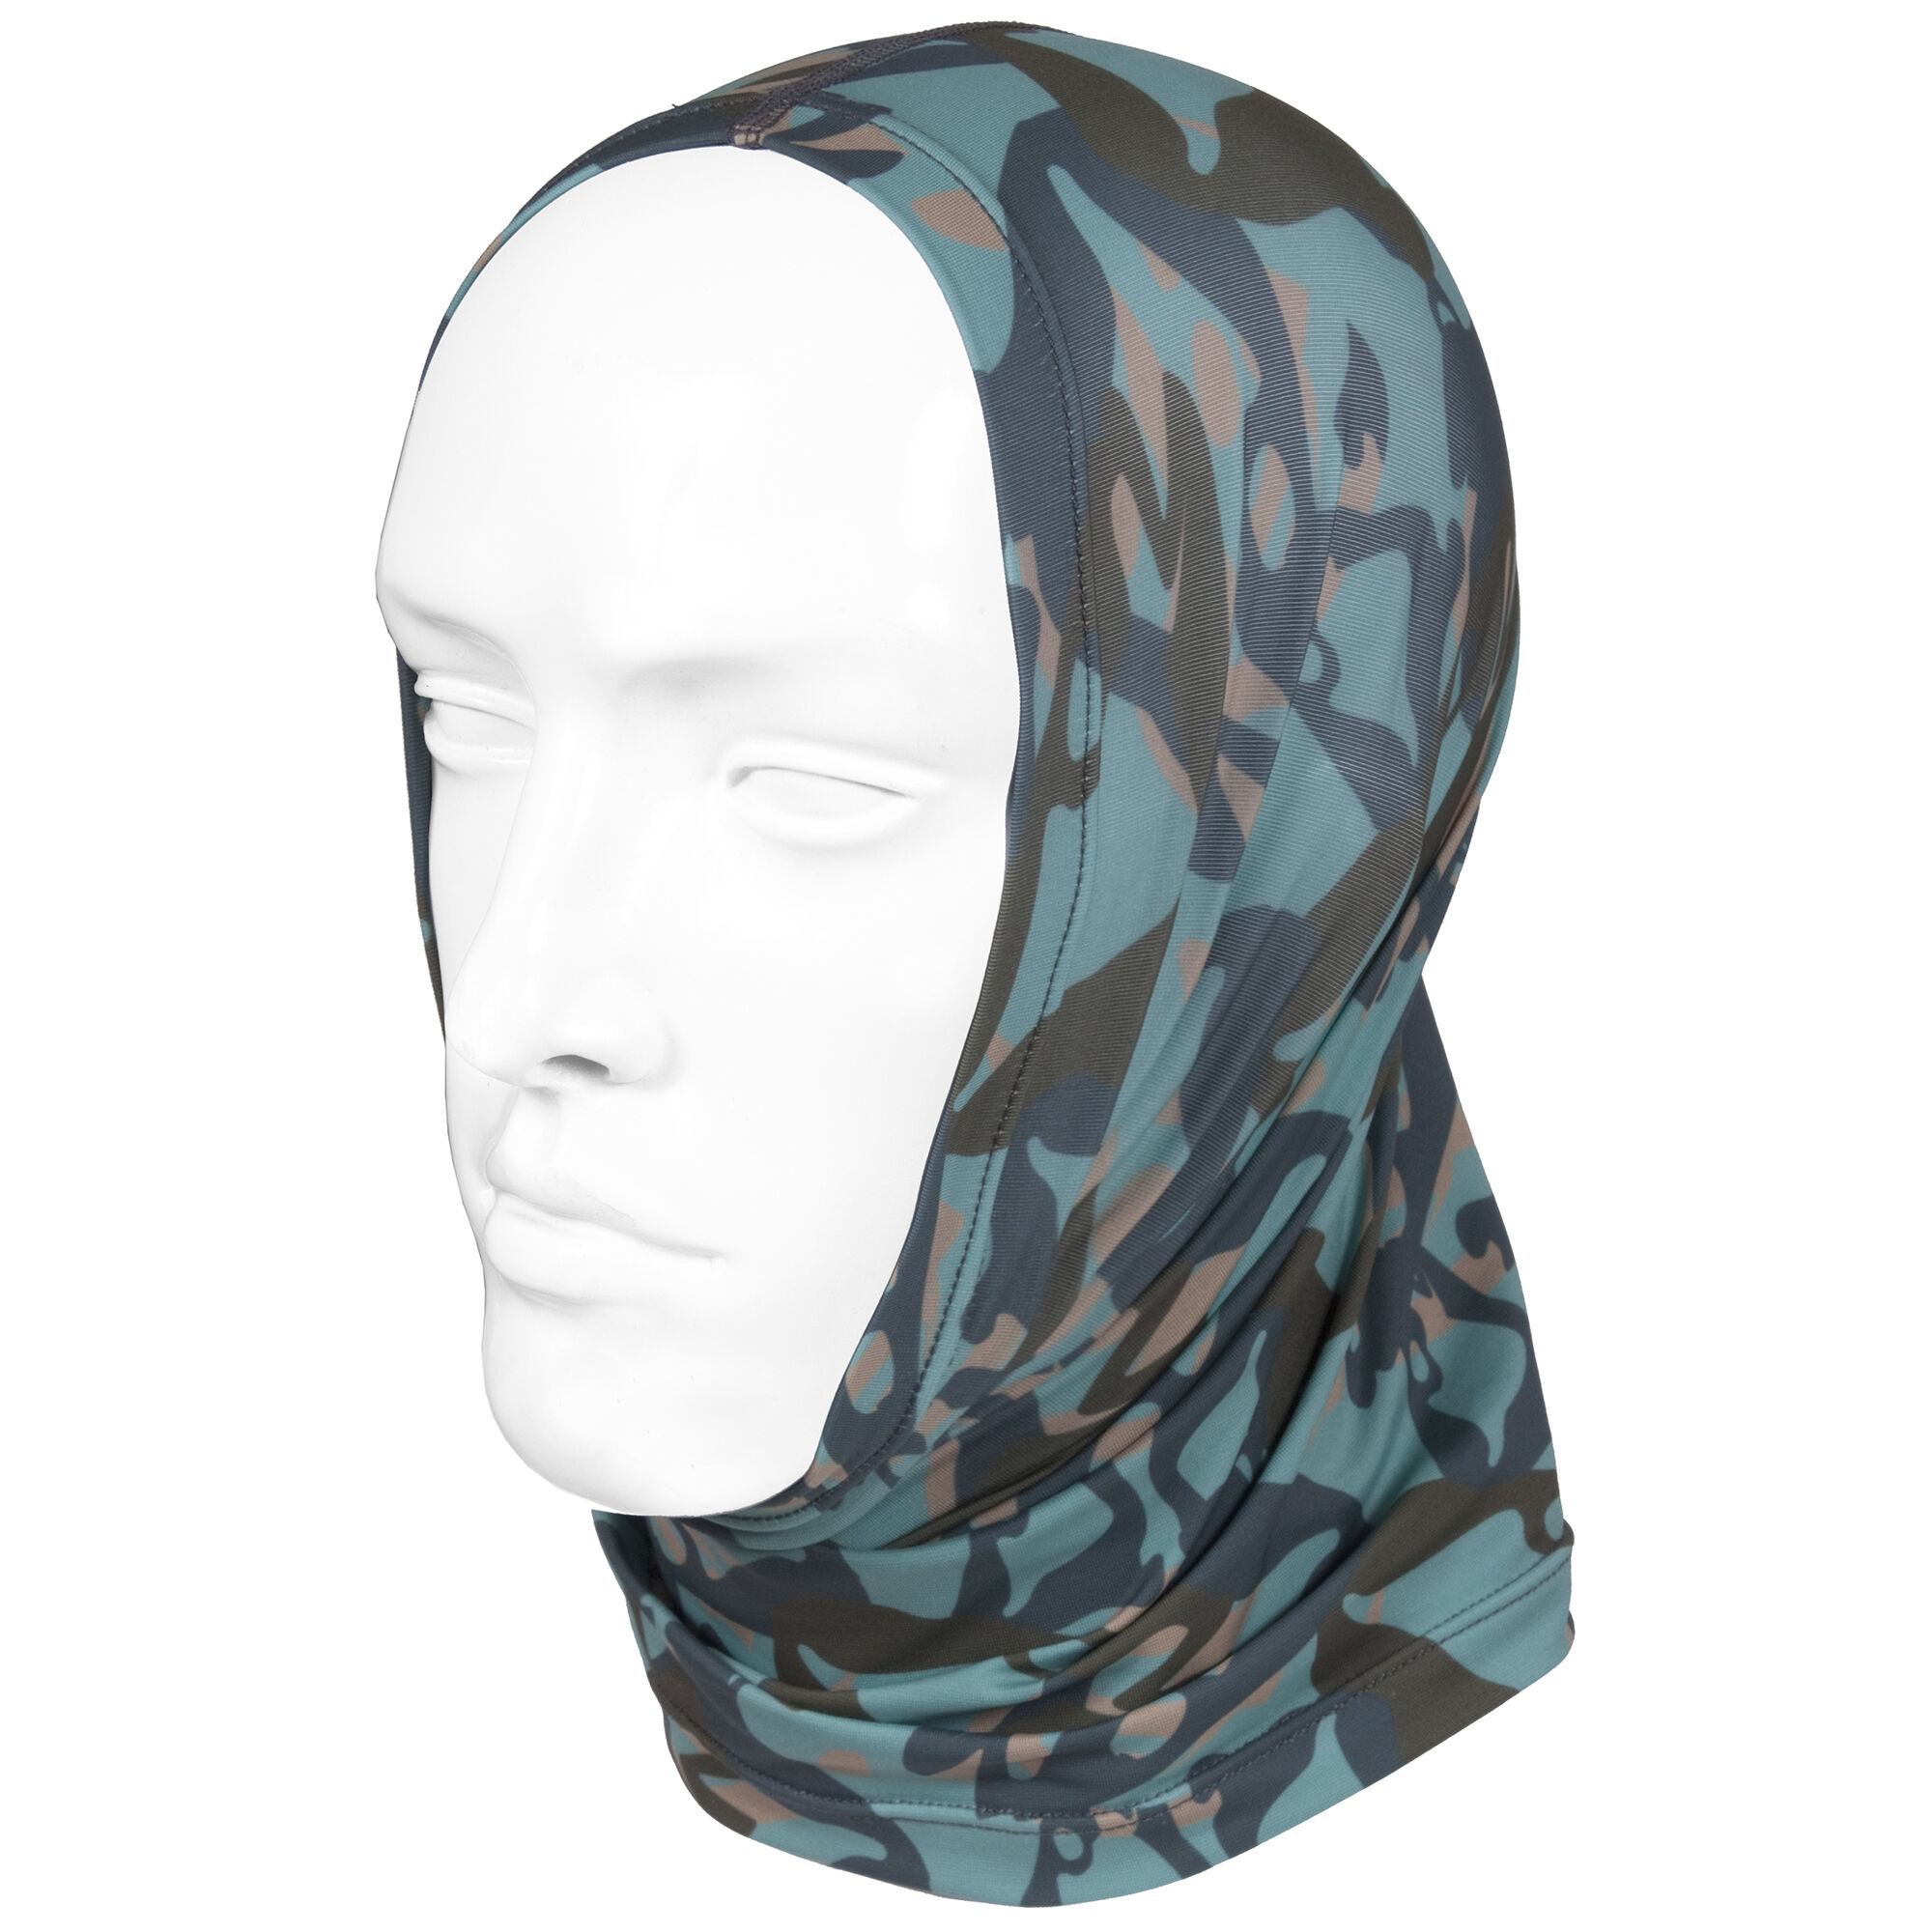 Gage by Grundens Fish Head Neck Gaiter